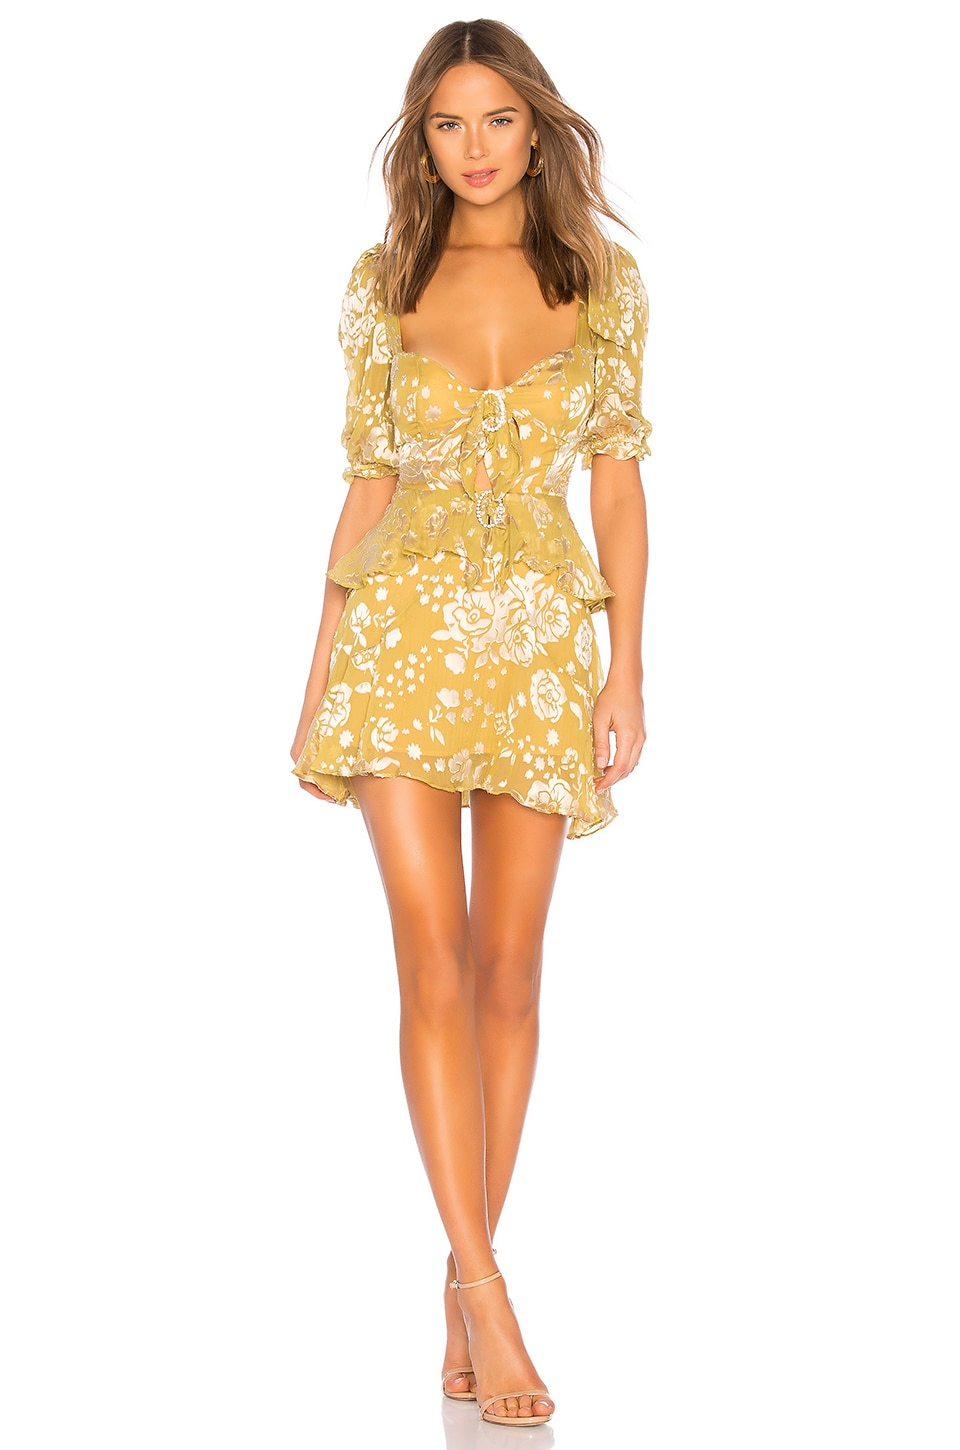 For Love & Lemons Cosmo Mini Dress in Mustard